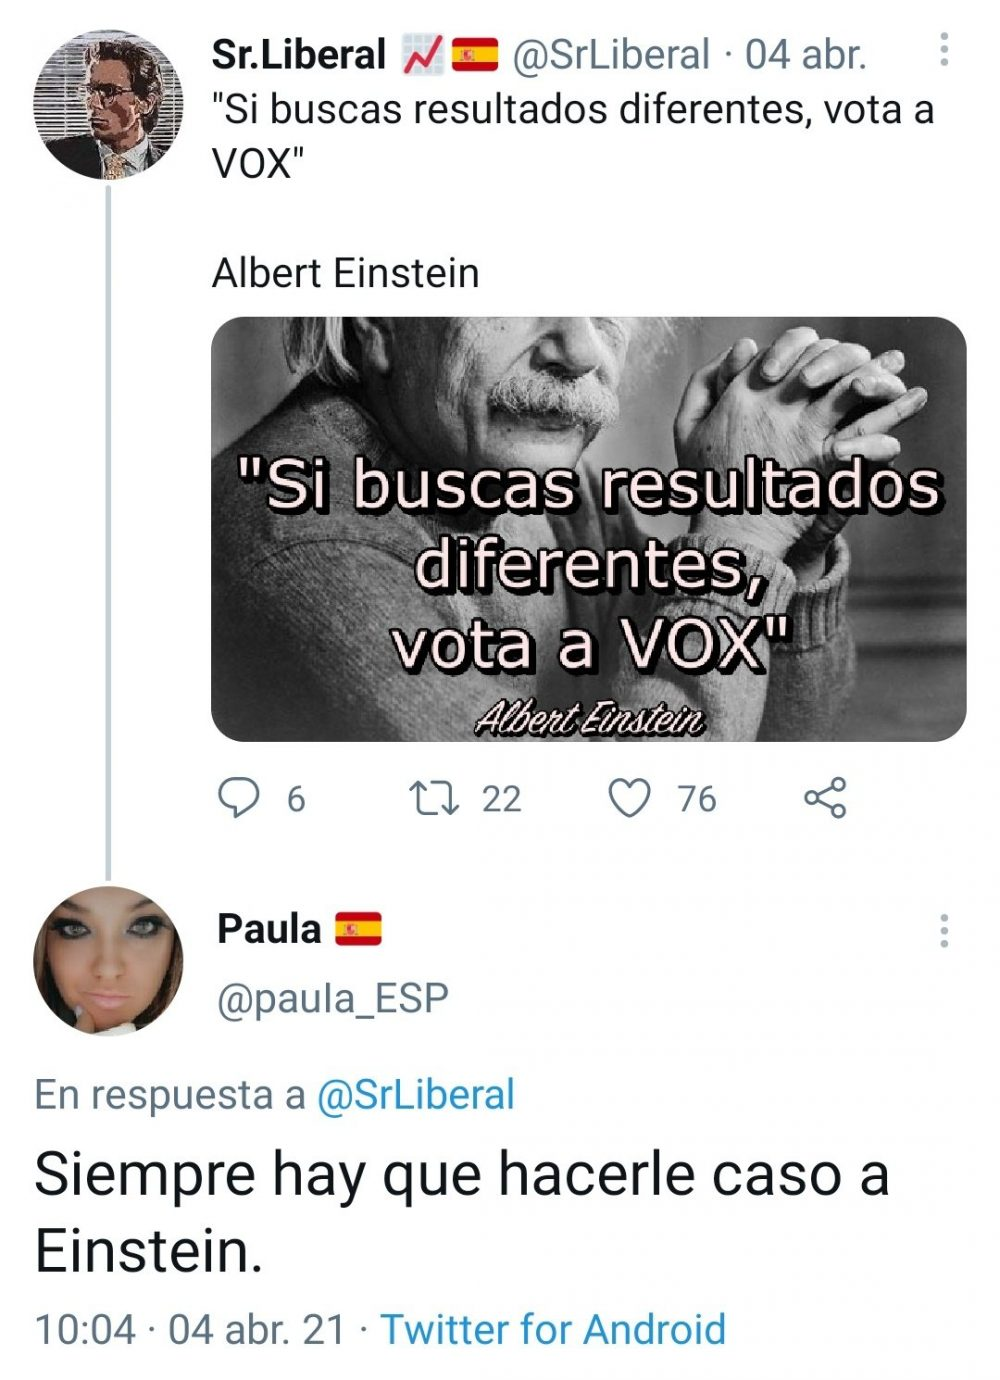 Un fake especialmente desafortunado...